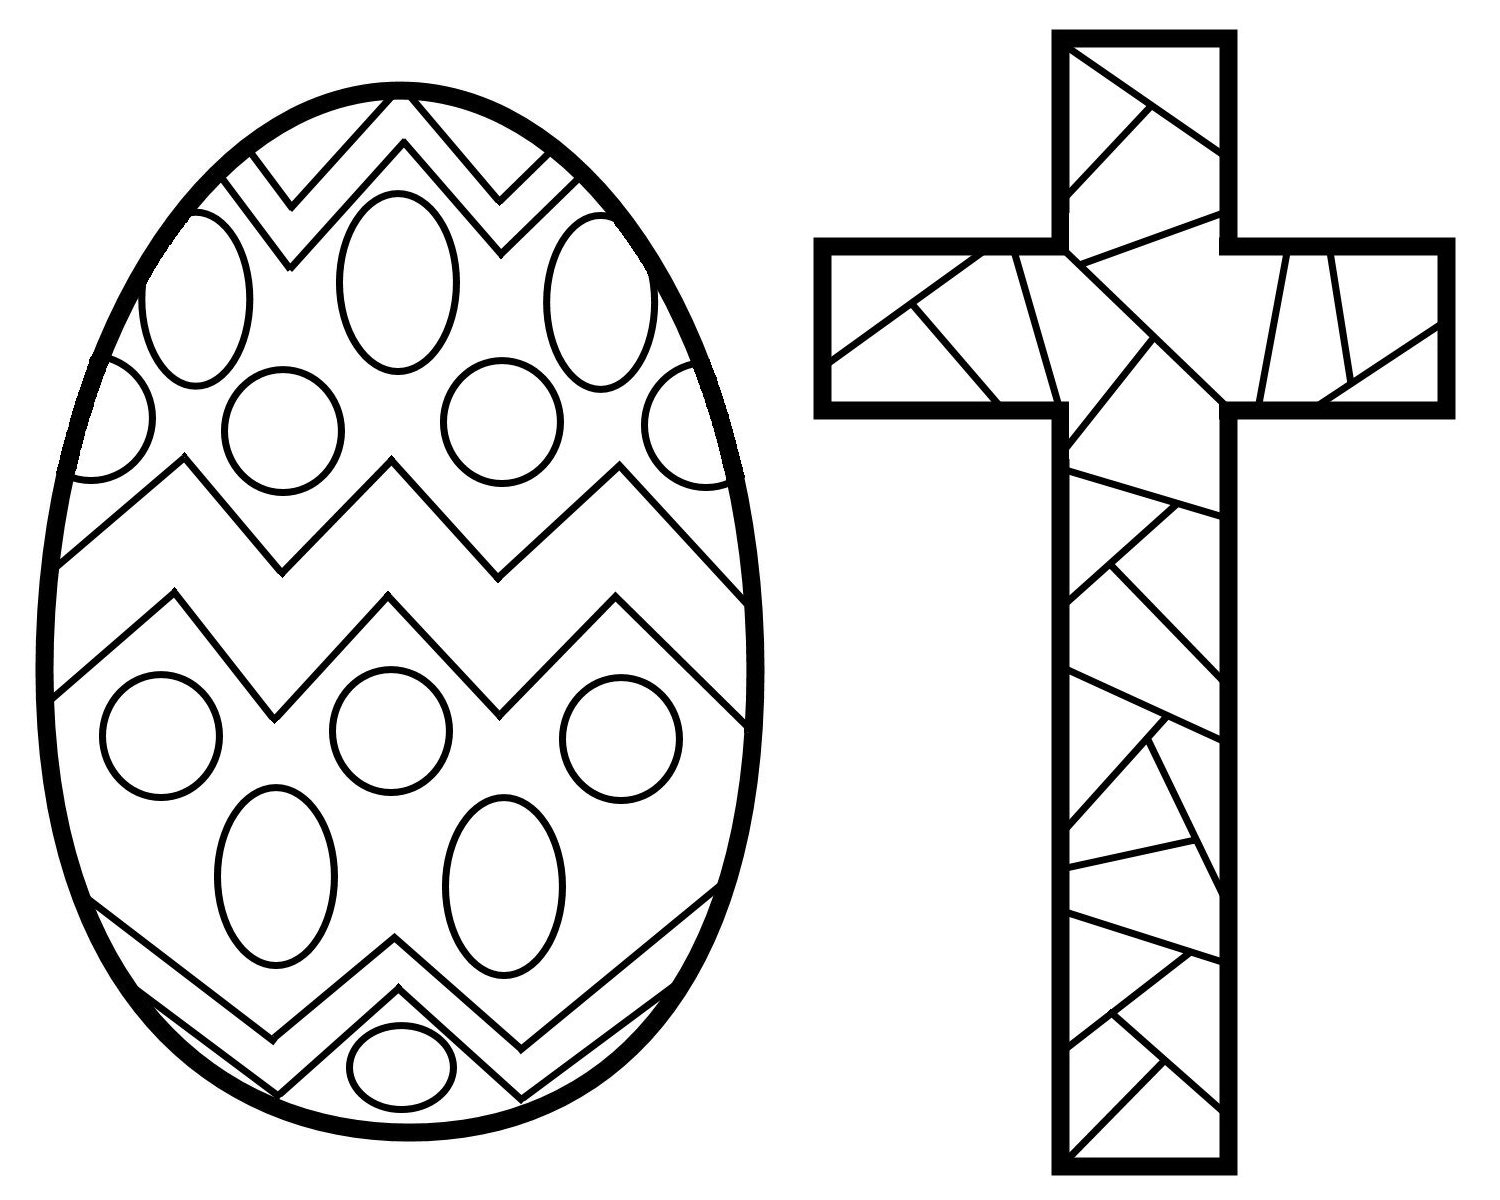 Stained Glass Coloring Pages To Print Stained Glass Coloring Sheets